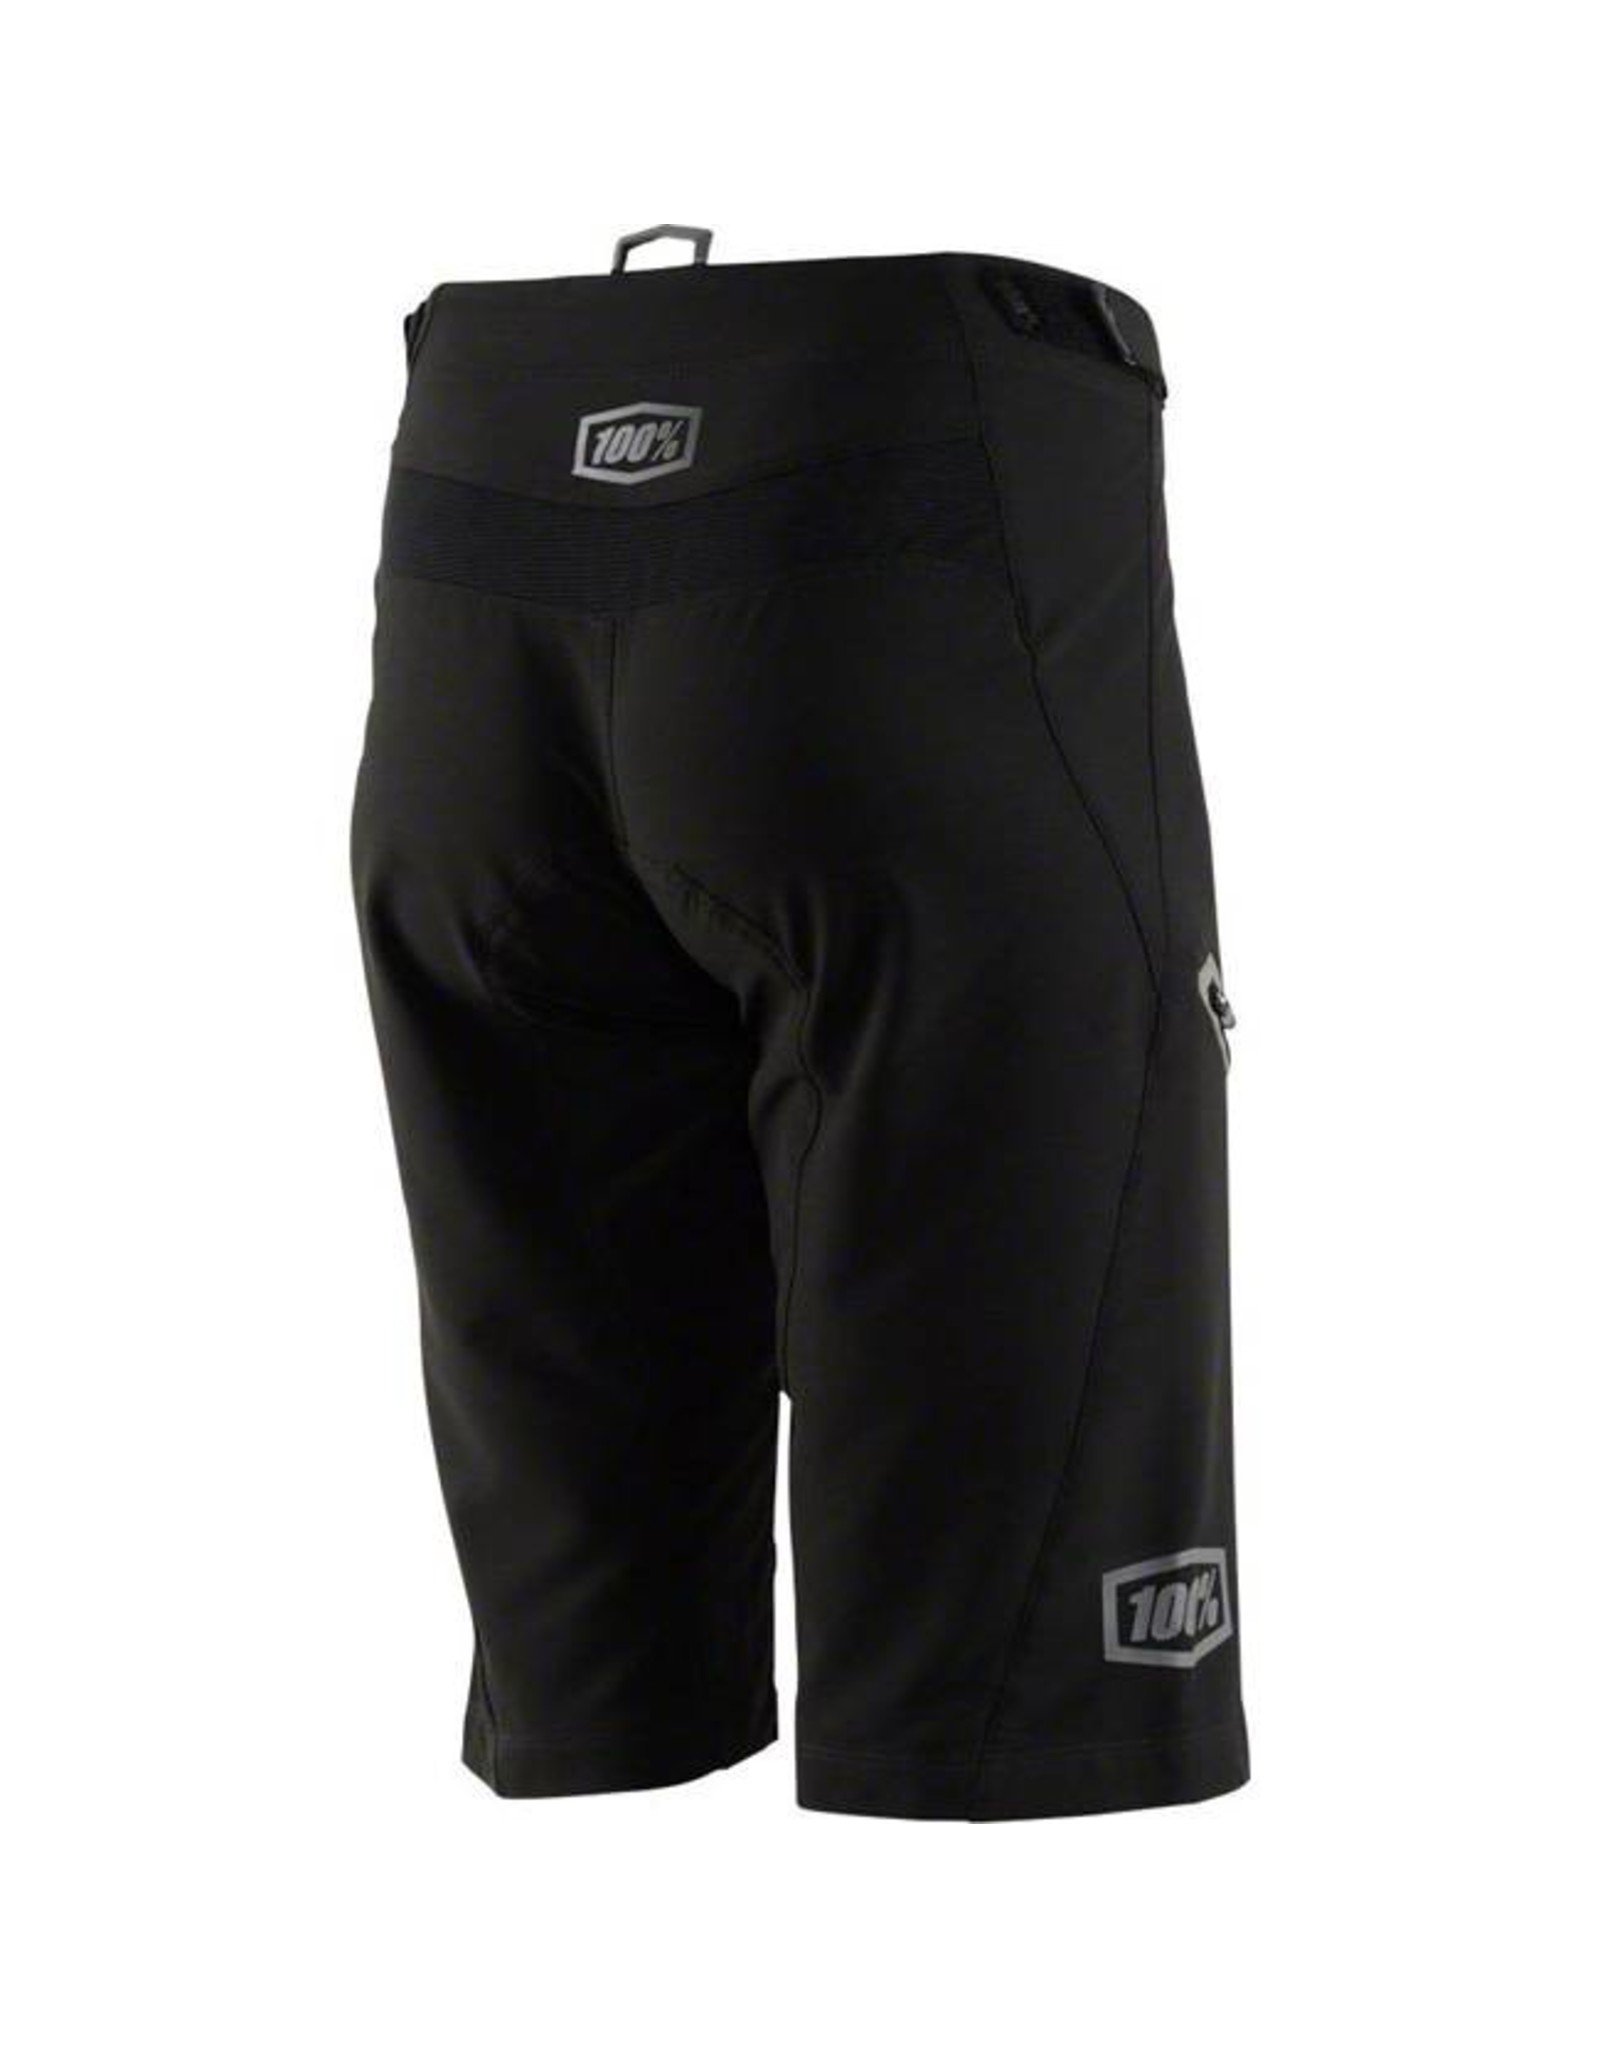 100% 100% Airmatic Women's MTB Short: Black XL